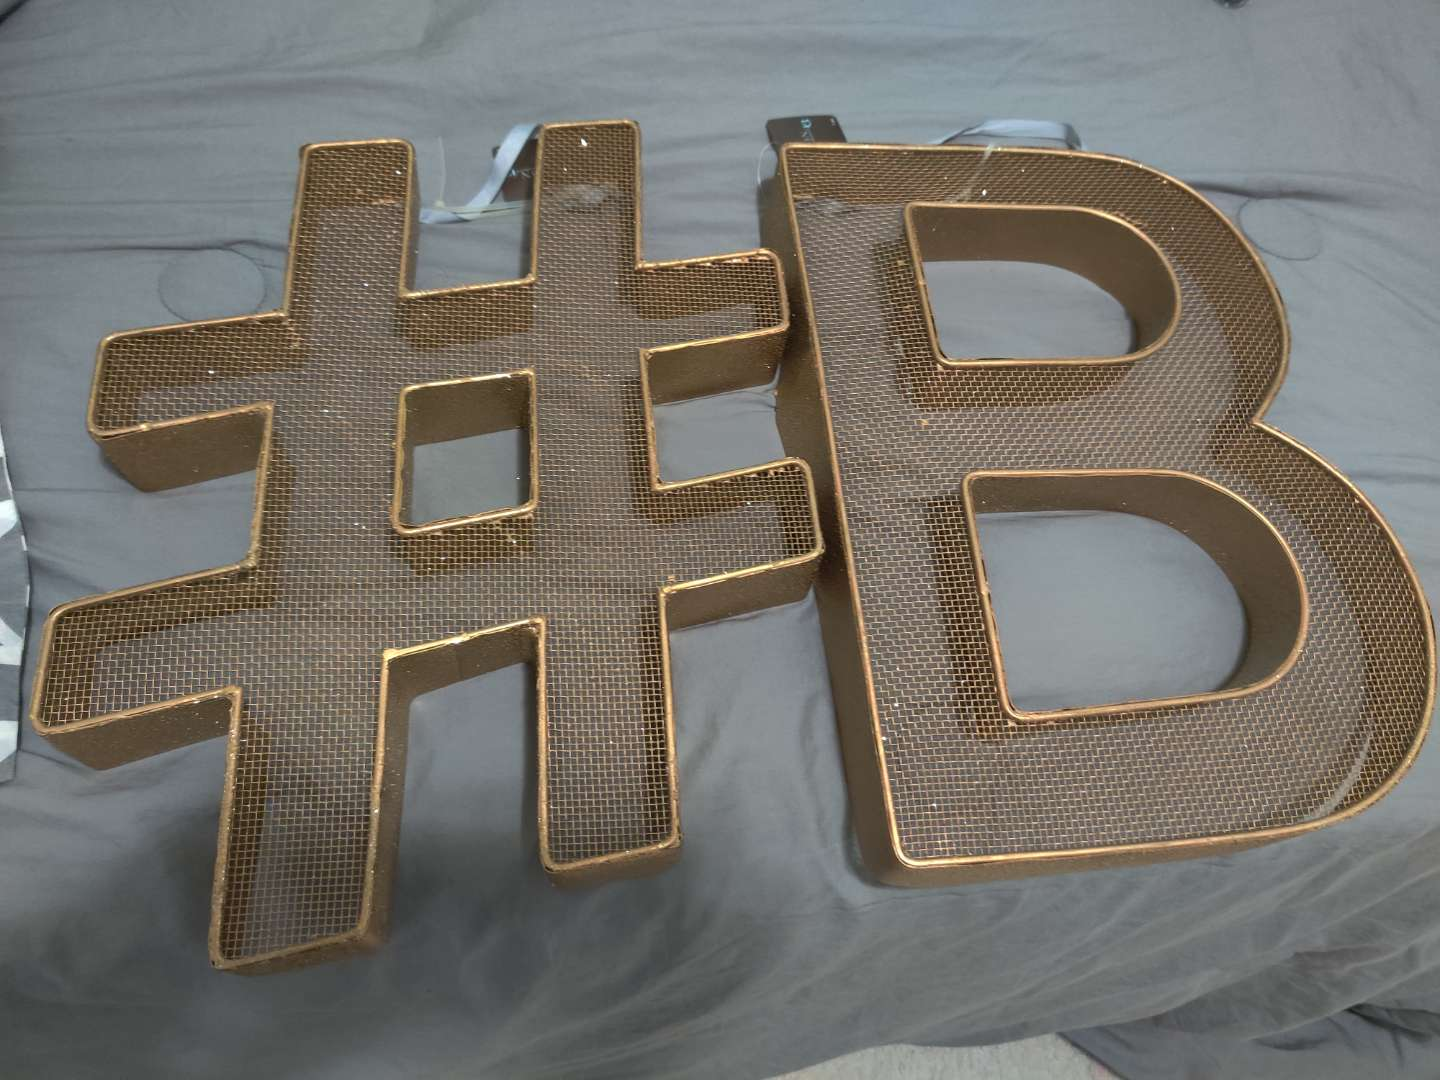 338 # and letter B 15 inches metal